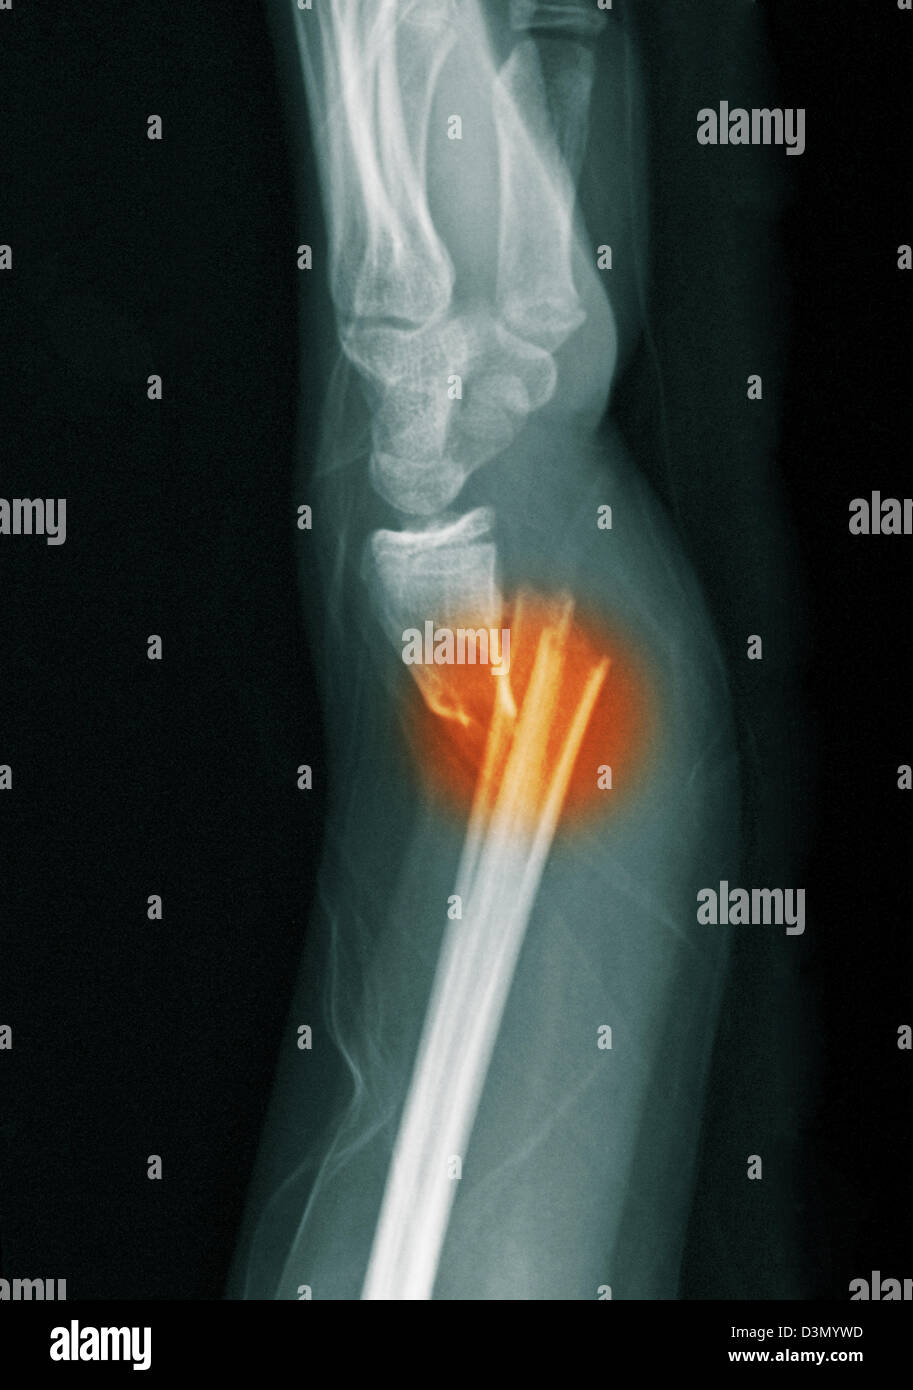 x-ray showing a distal radius and ulna fracture in a 12 year old girl - Stock Image